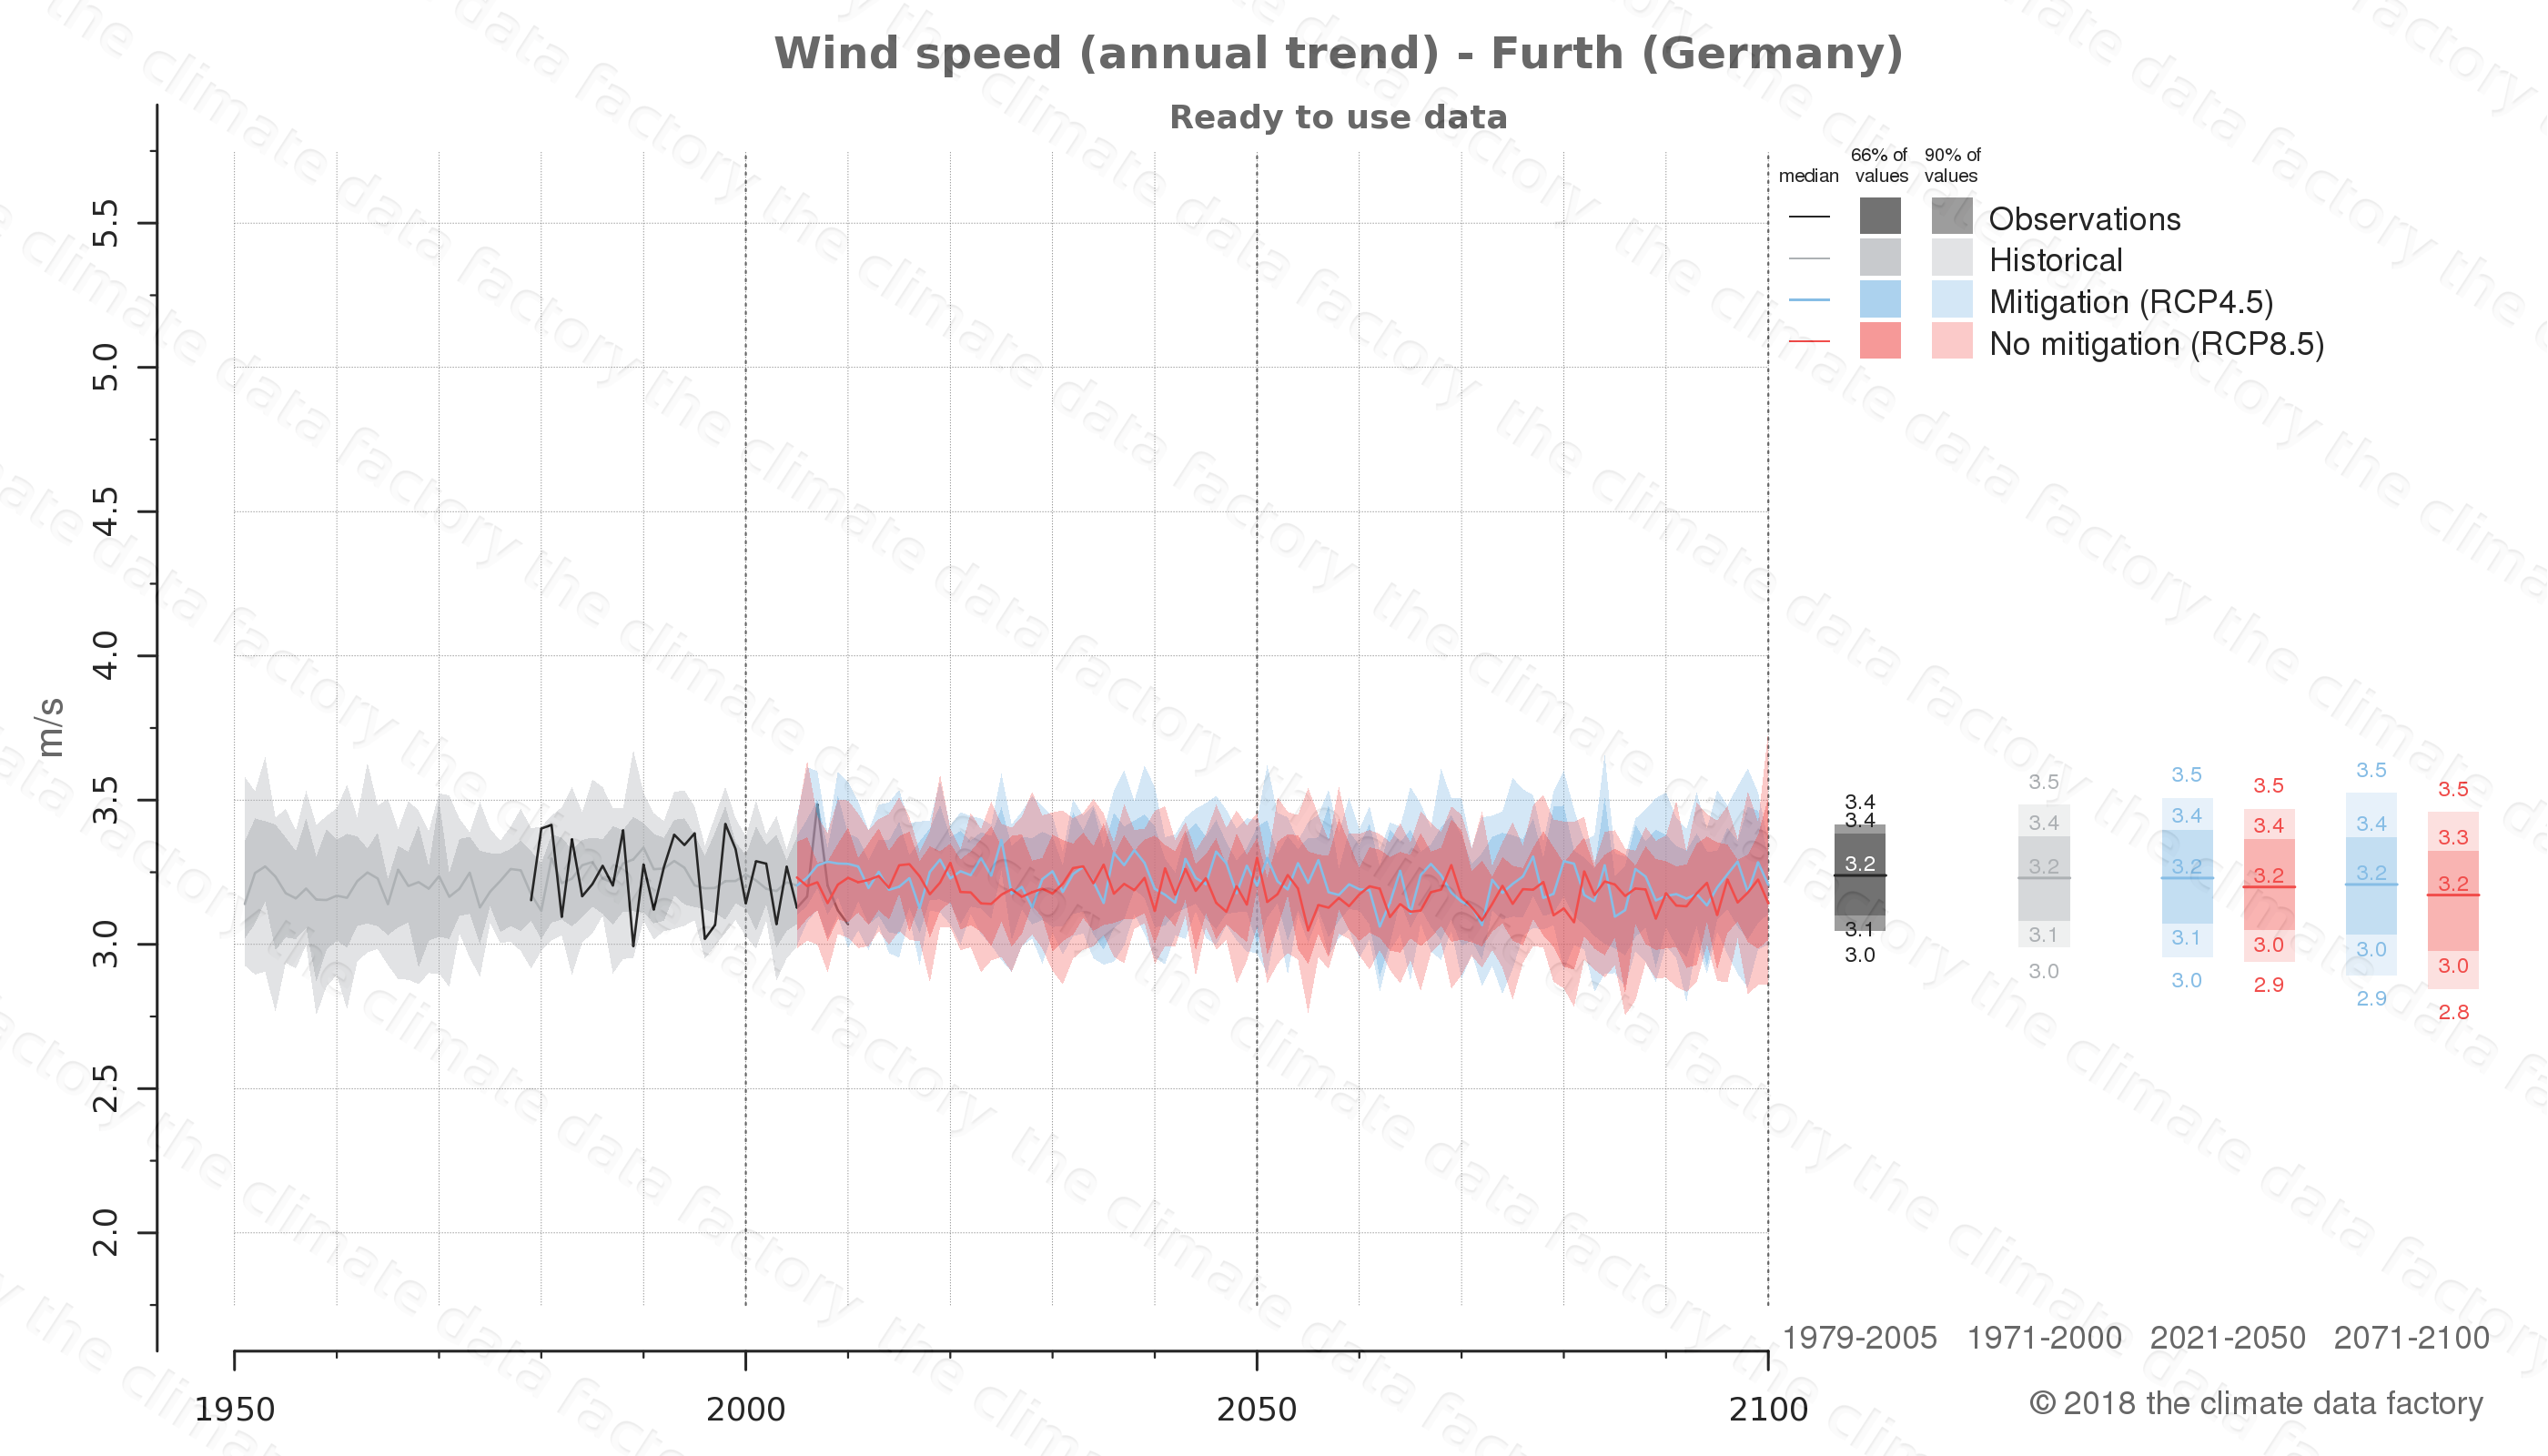 climate change data policy adaptation climate graph city data wind-speed furth germany